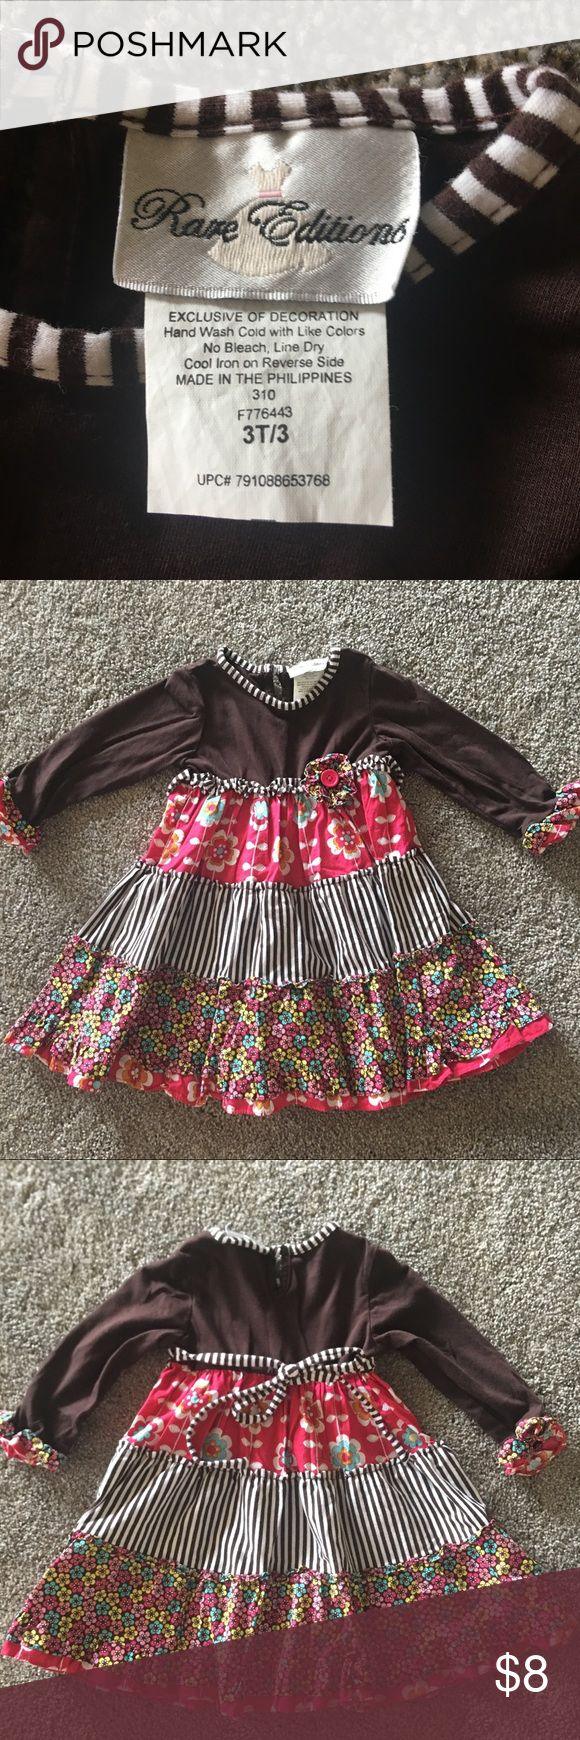 Little girls dress size 3T Adorable rare editions brand dress purchased from Dillard's and worn one time. Smoke free home! Rare Editions Dresses Casual